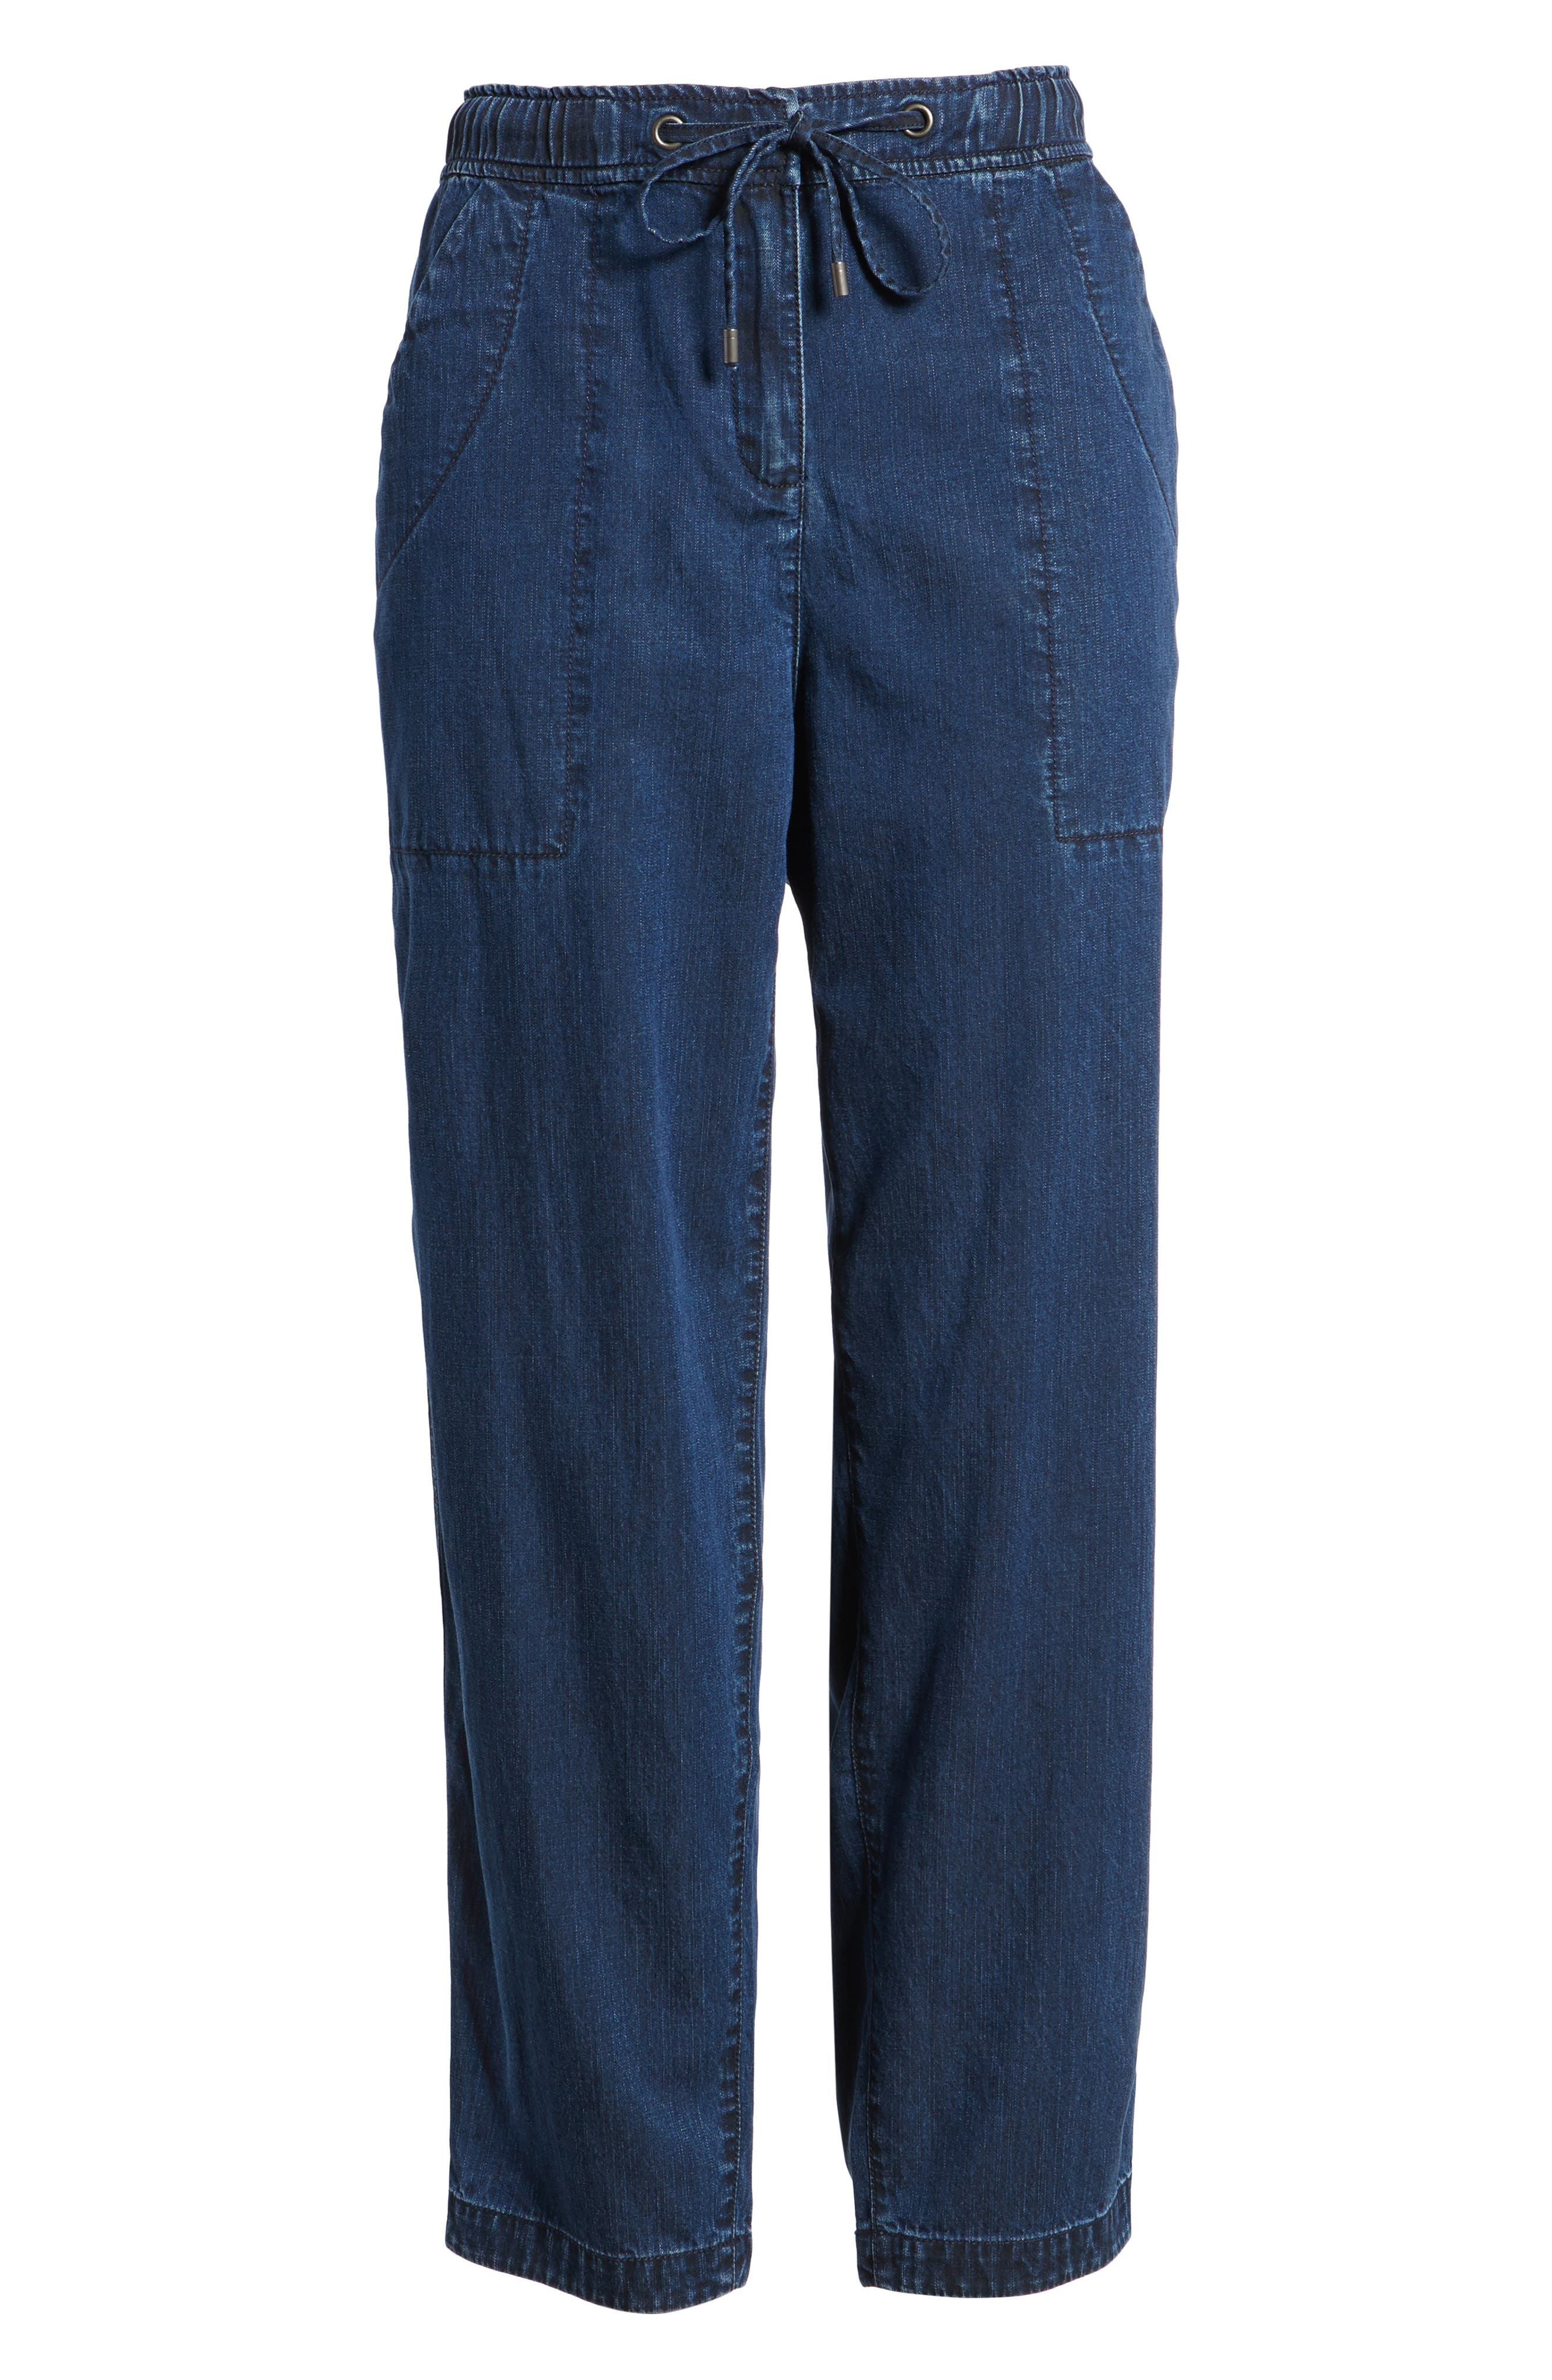 Slouchy Ankle Denim Pants,                             Alternate thumbnail 7, color,                             Midnight